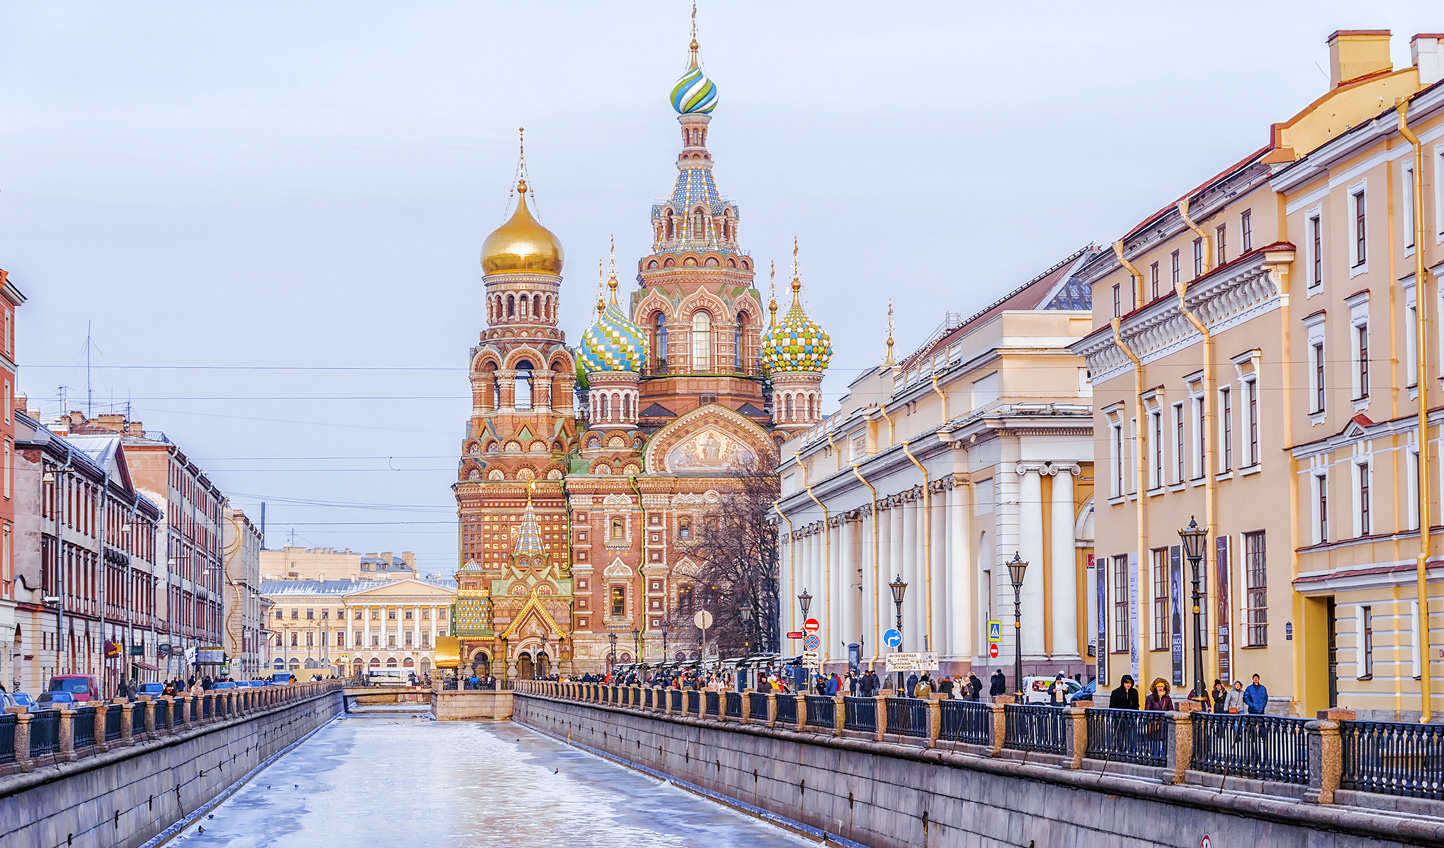 Discover the elegance and grandeur of St Petersburg